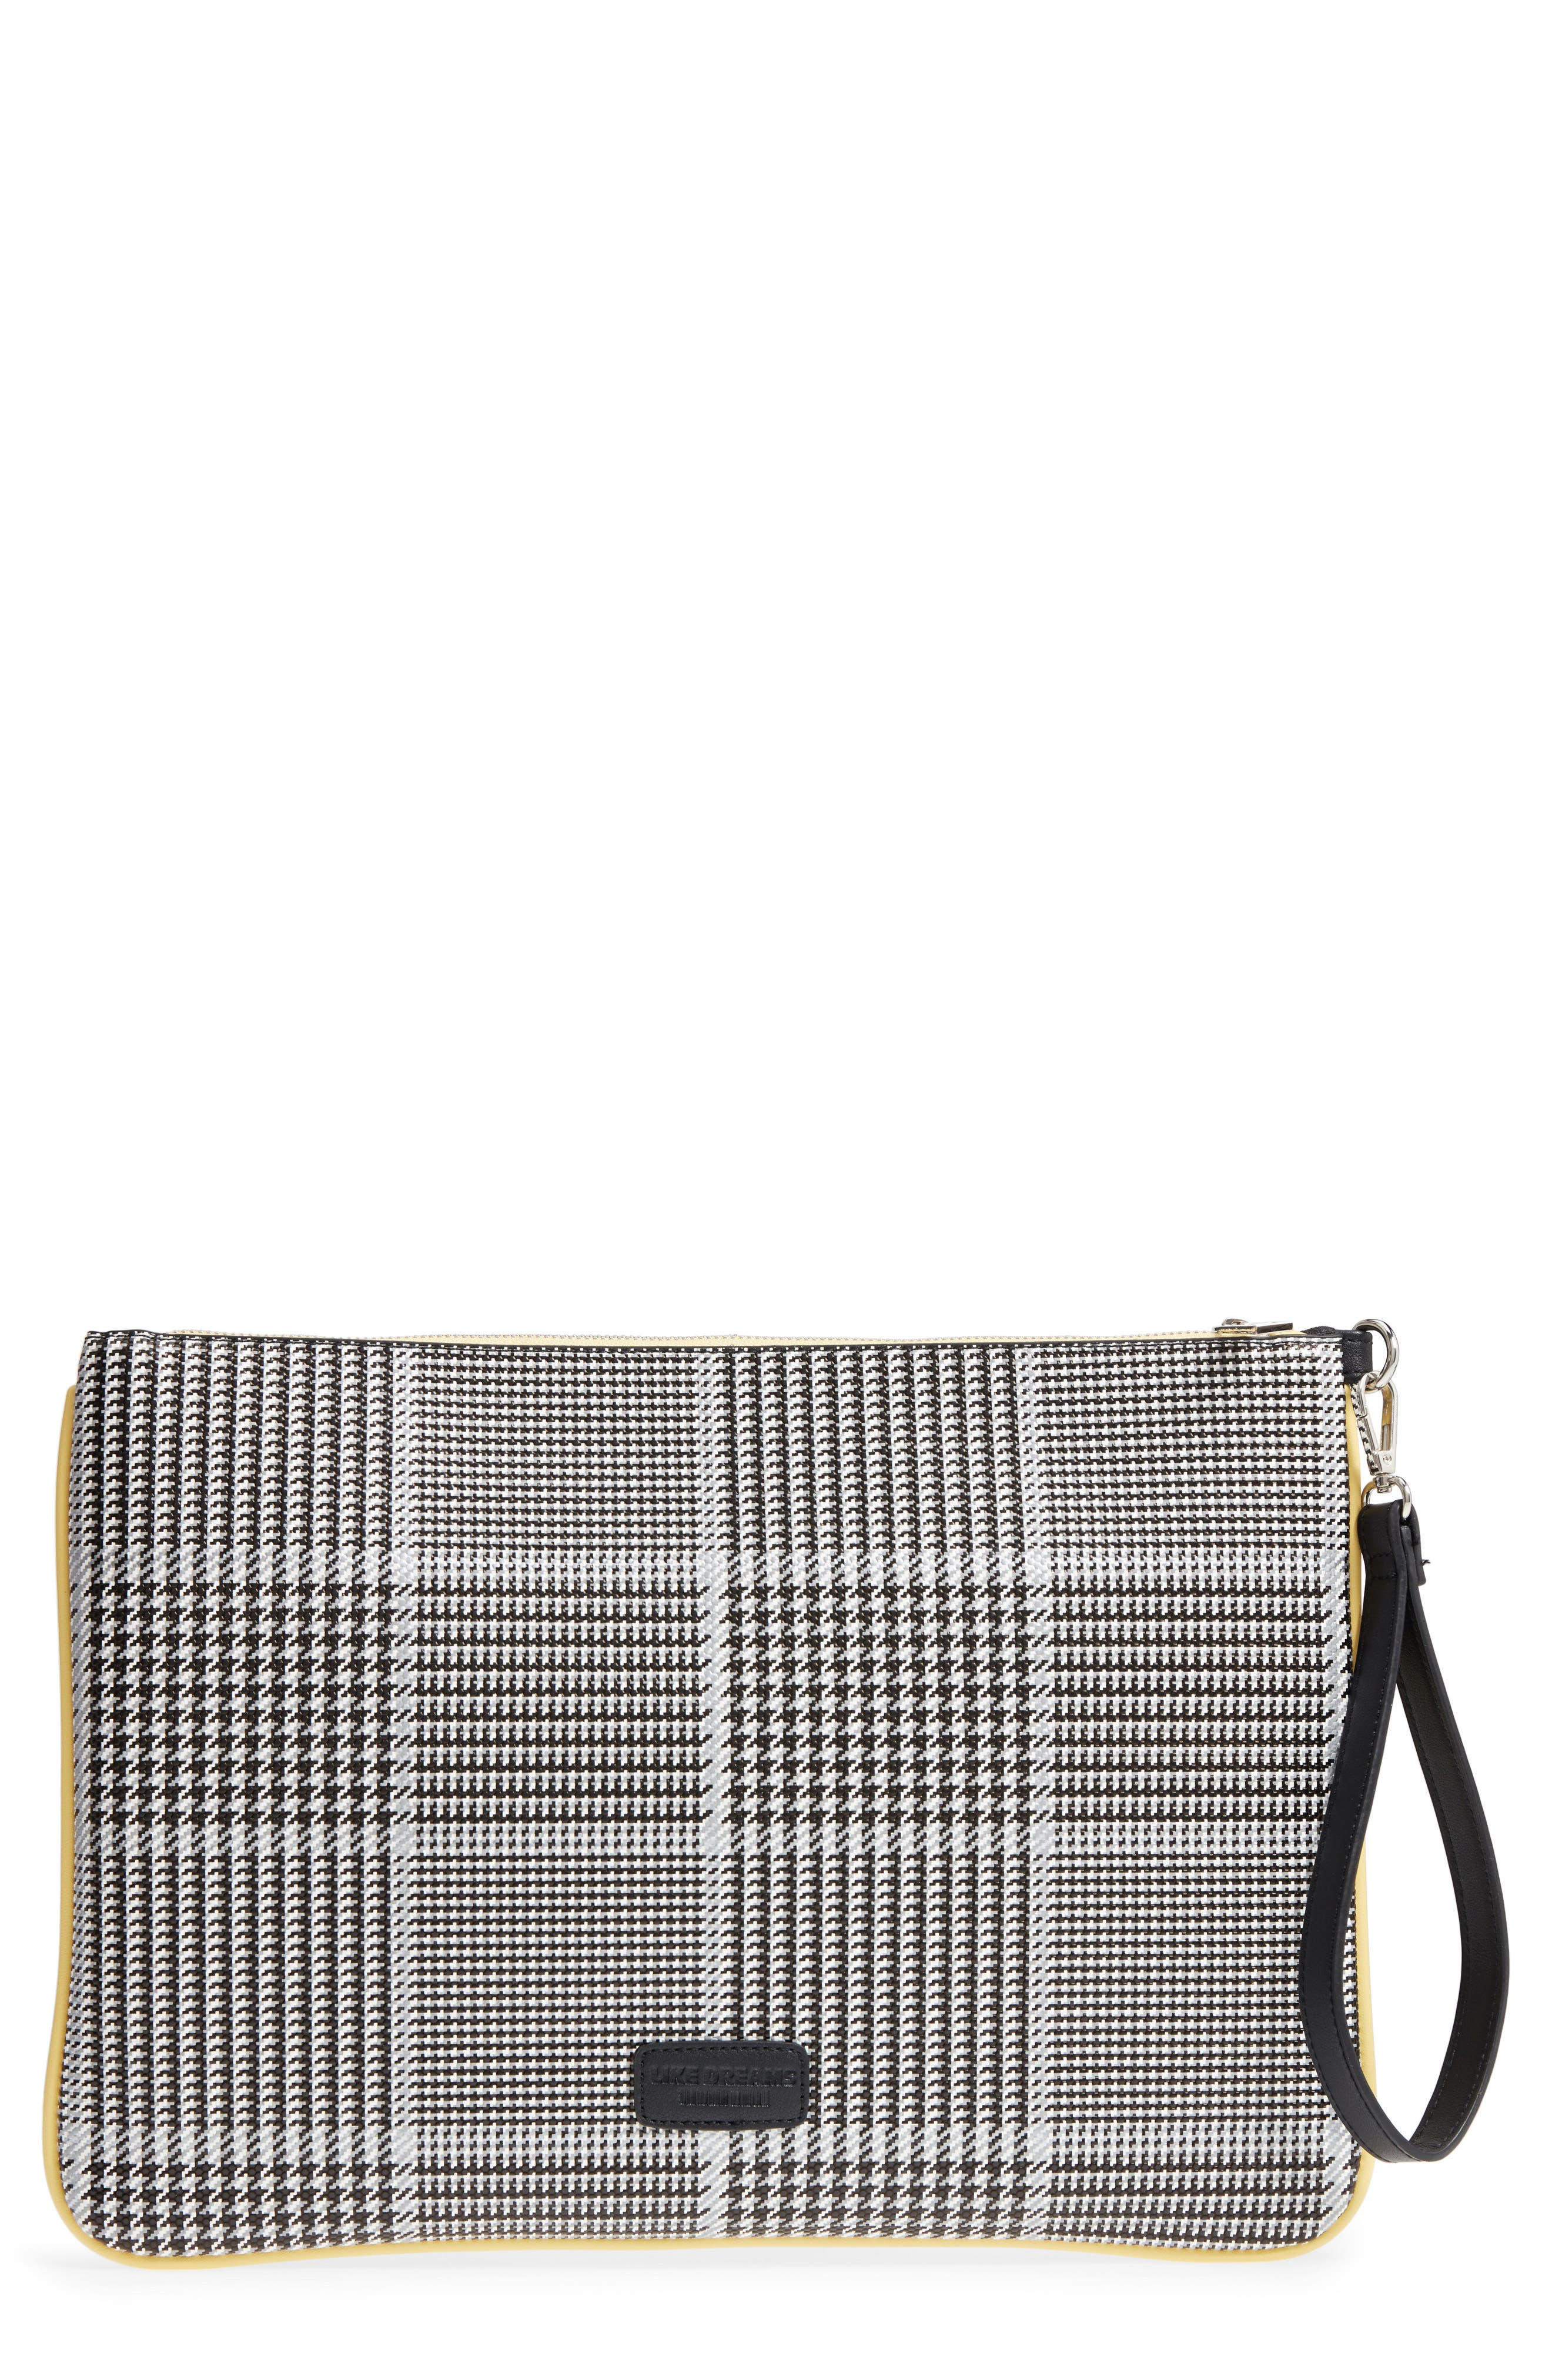 Prince of Wales Check Clutch,                         Main,                         color, 001